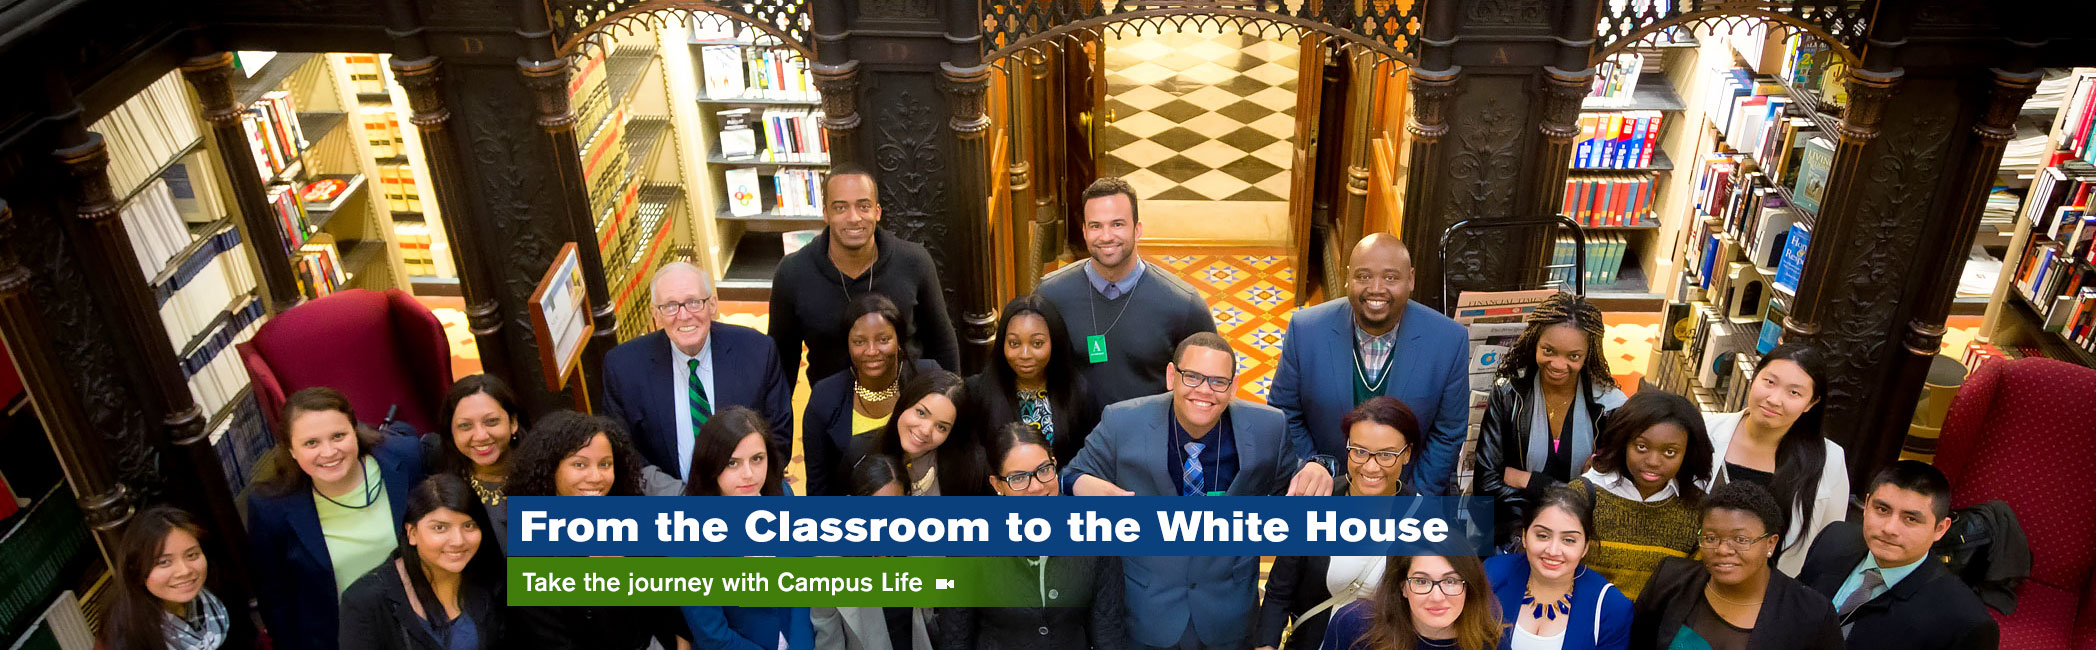 From the Classroom to the White House, Take the journey with Campus Life